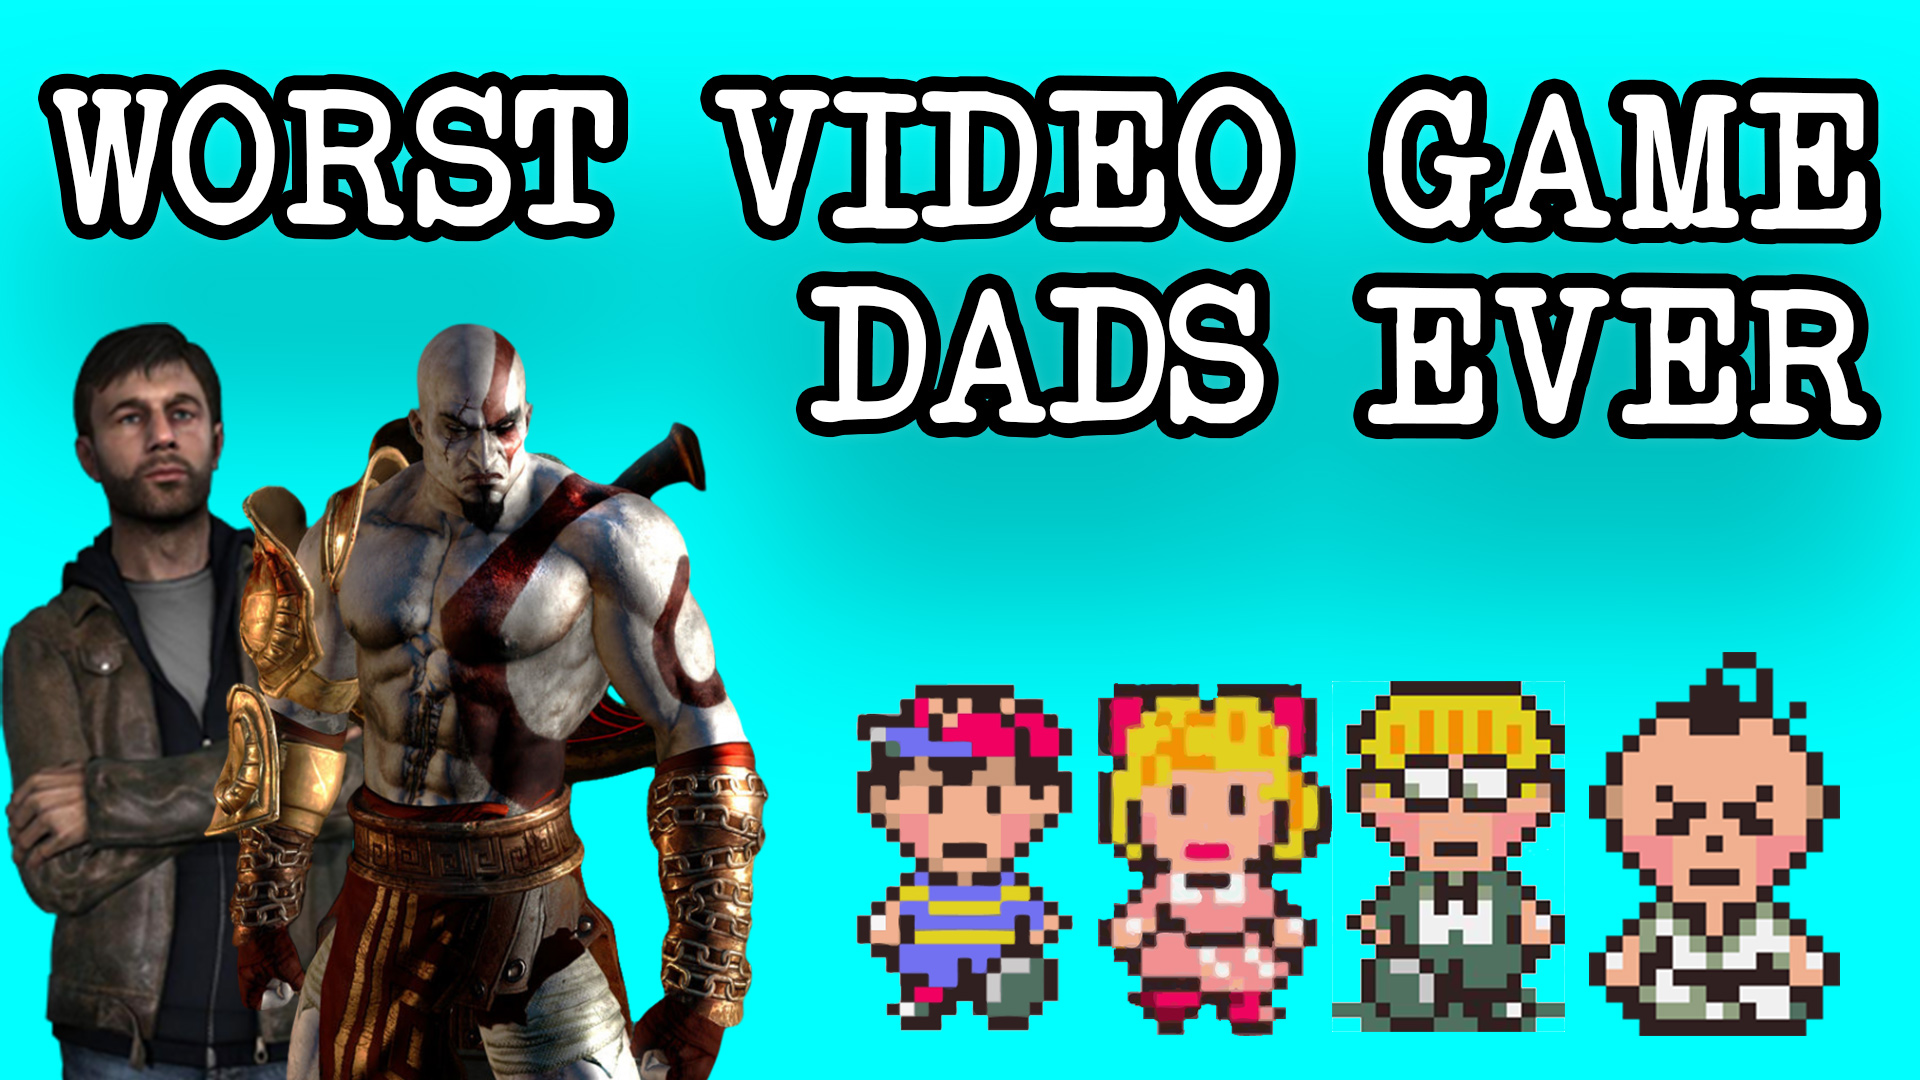 father's day, video games, T Time, worst video game dads, Earthbound, Kratos, God of War, Heavy Rain, Ethan Mars